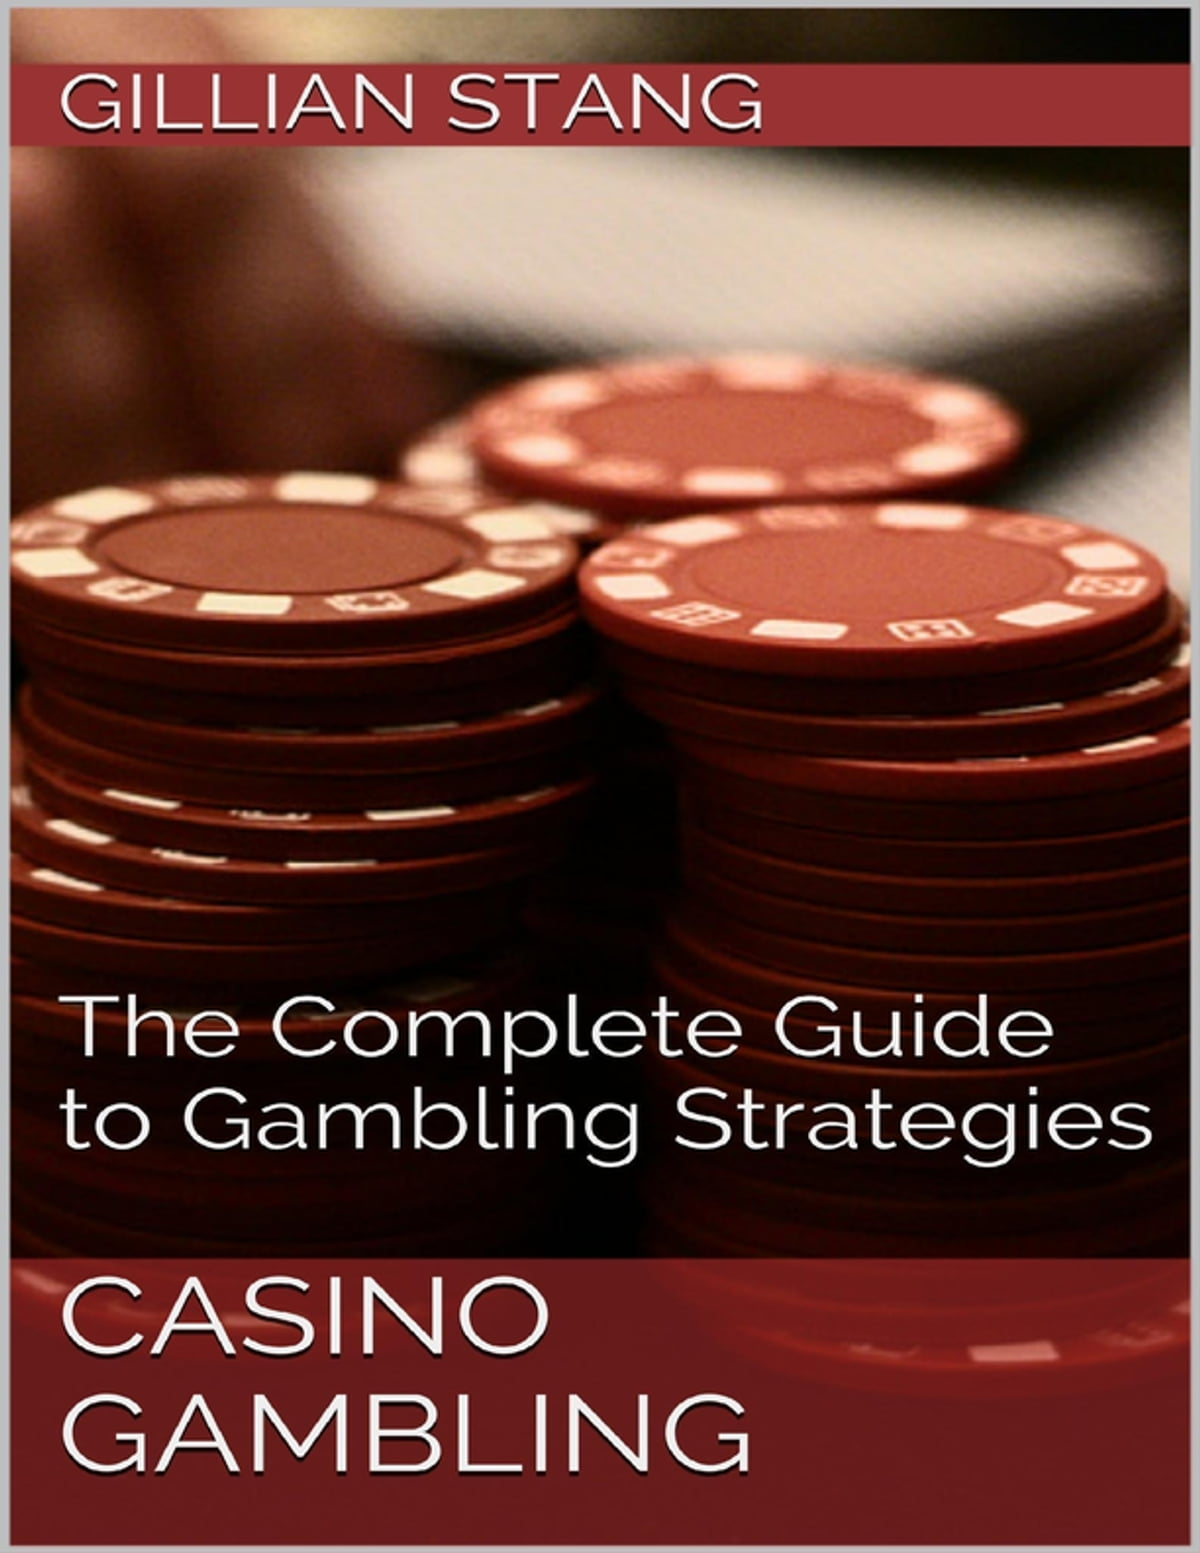 Complete guide to gambling atlantic casino city west wild